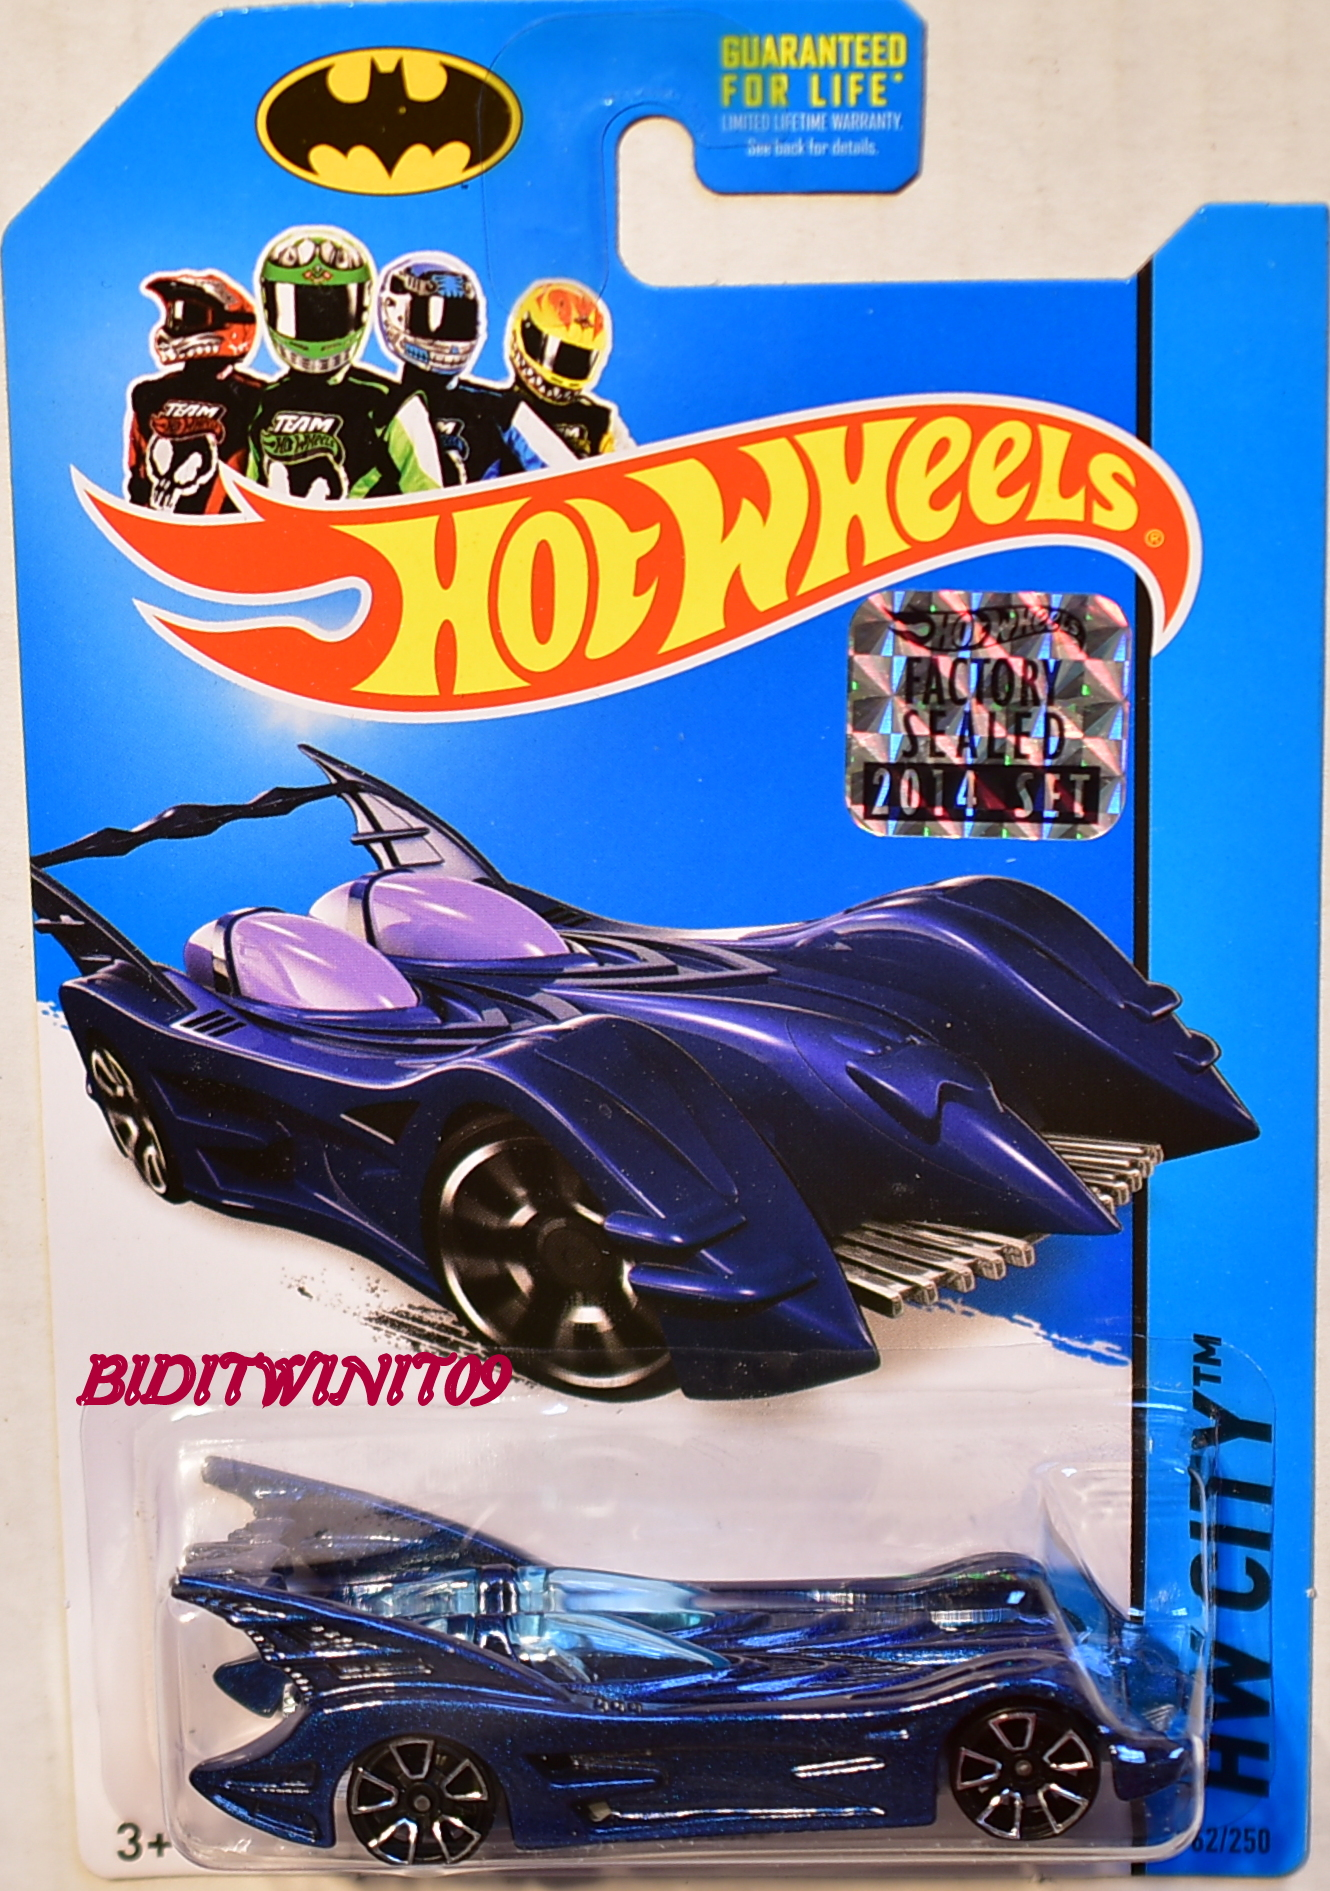 HOT WHEELS 2014 HW CITY BATMOBILE BLUE FACTORY SEALED ...